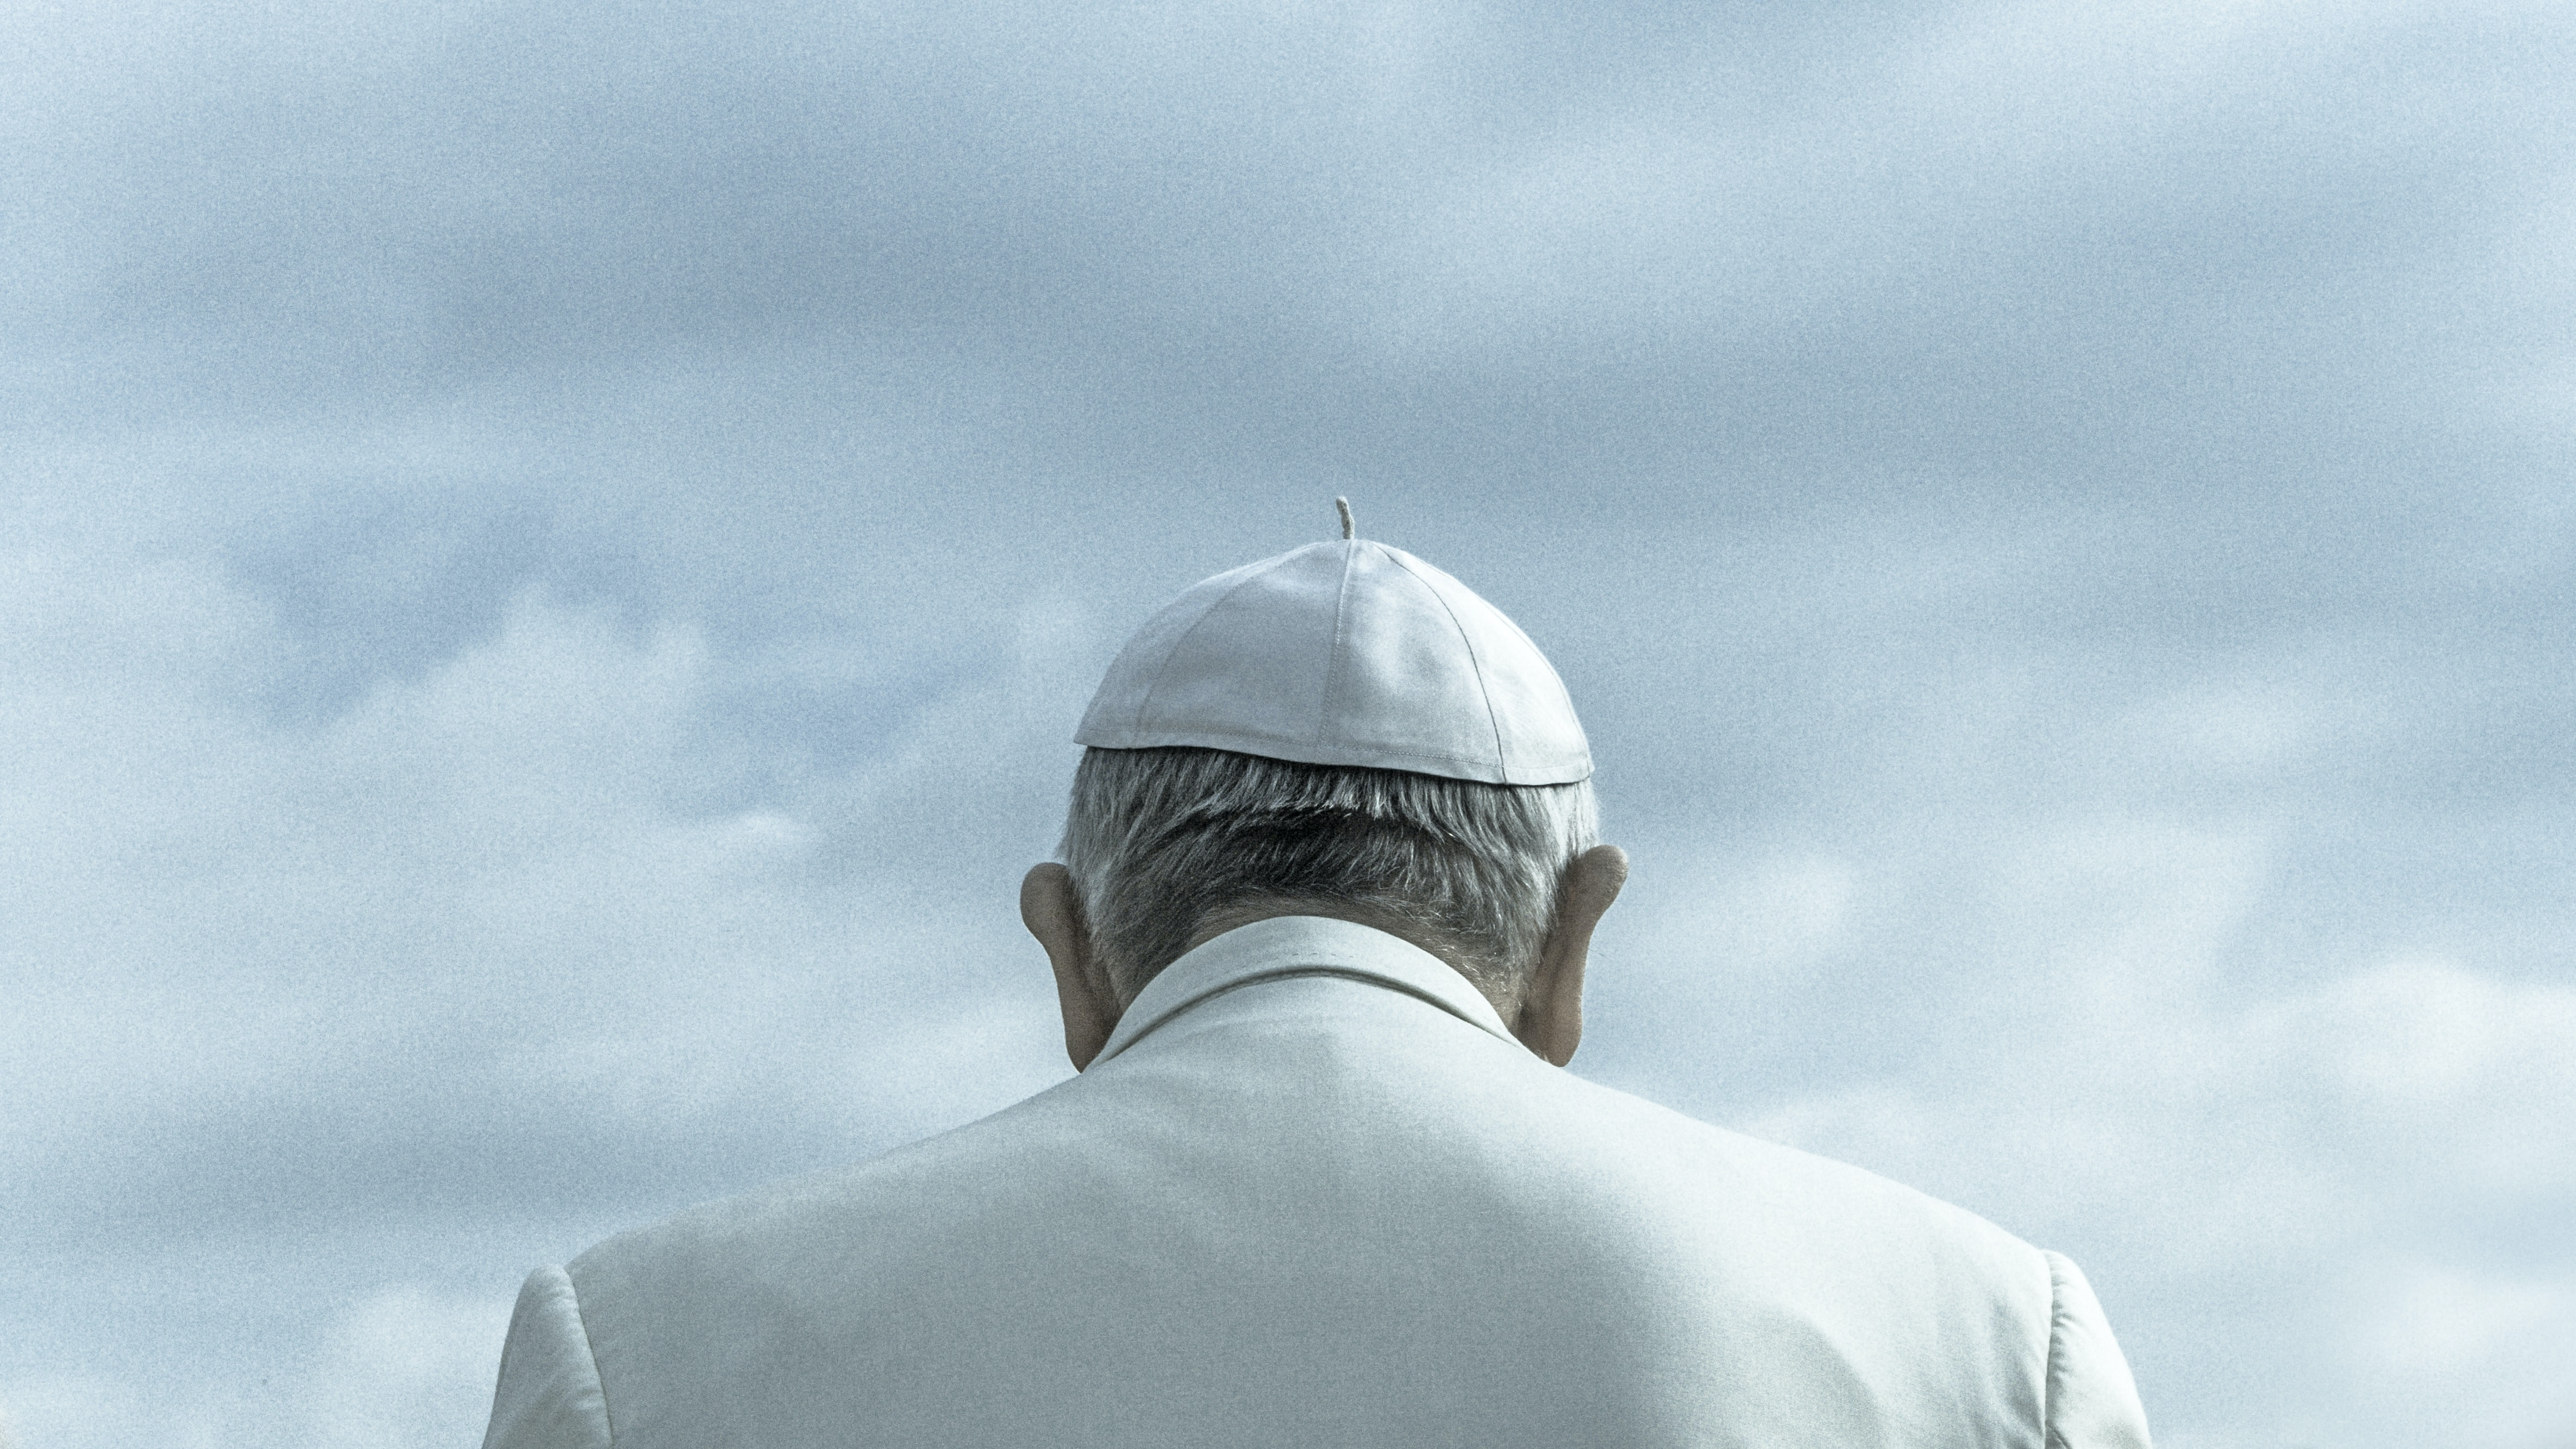 person wearing white cap looking down under cloudy sky during daytime